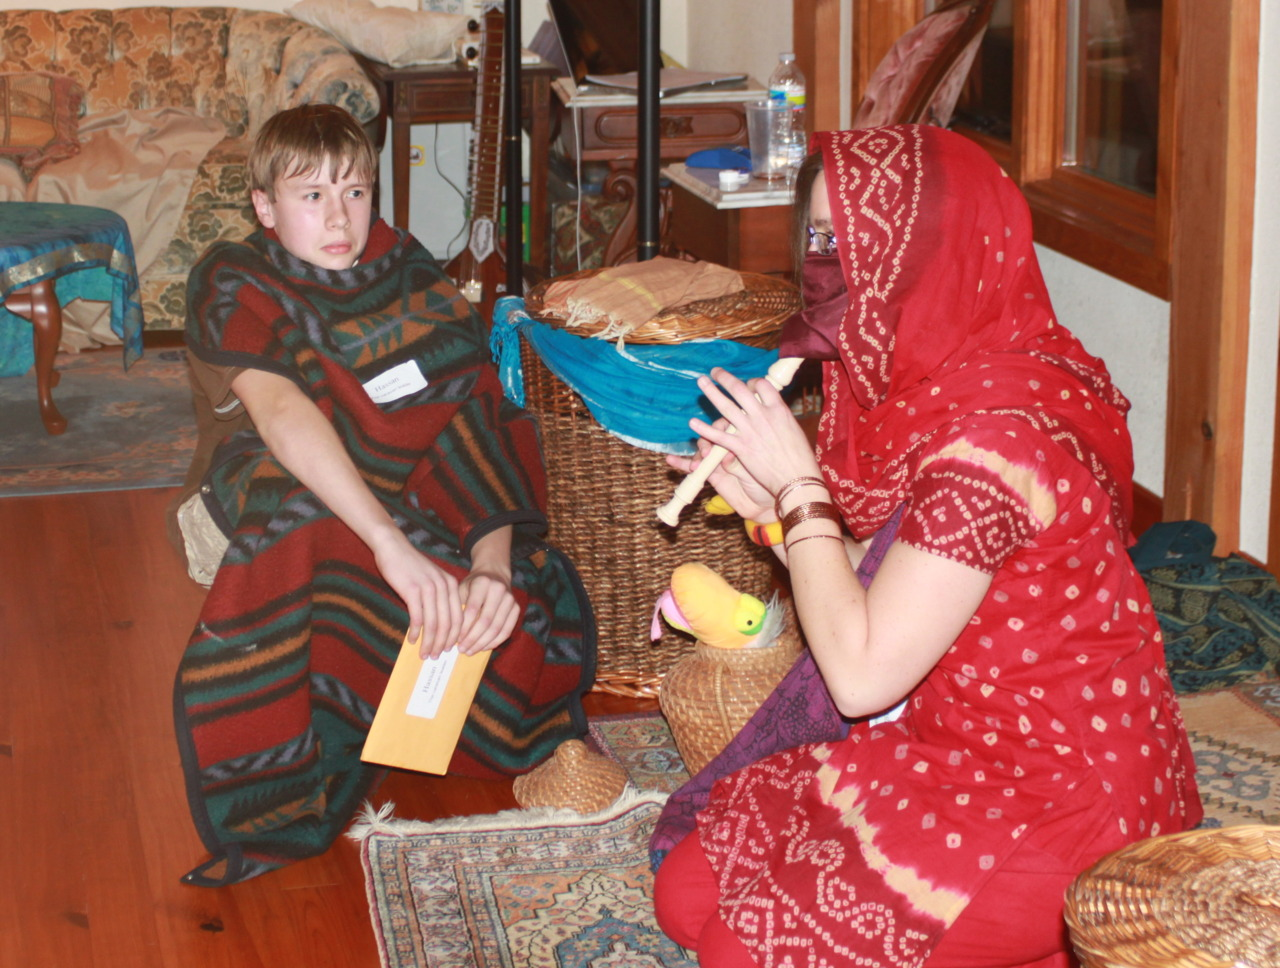 Arabian Nights – Hassan's introduction to Rasha included a snake-charming performance 